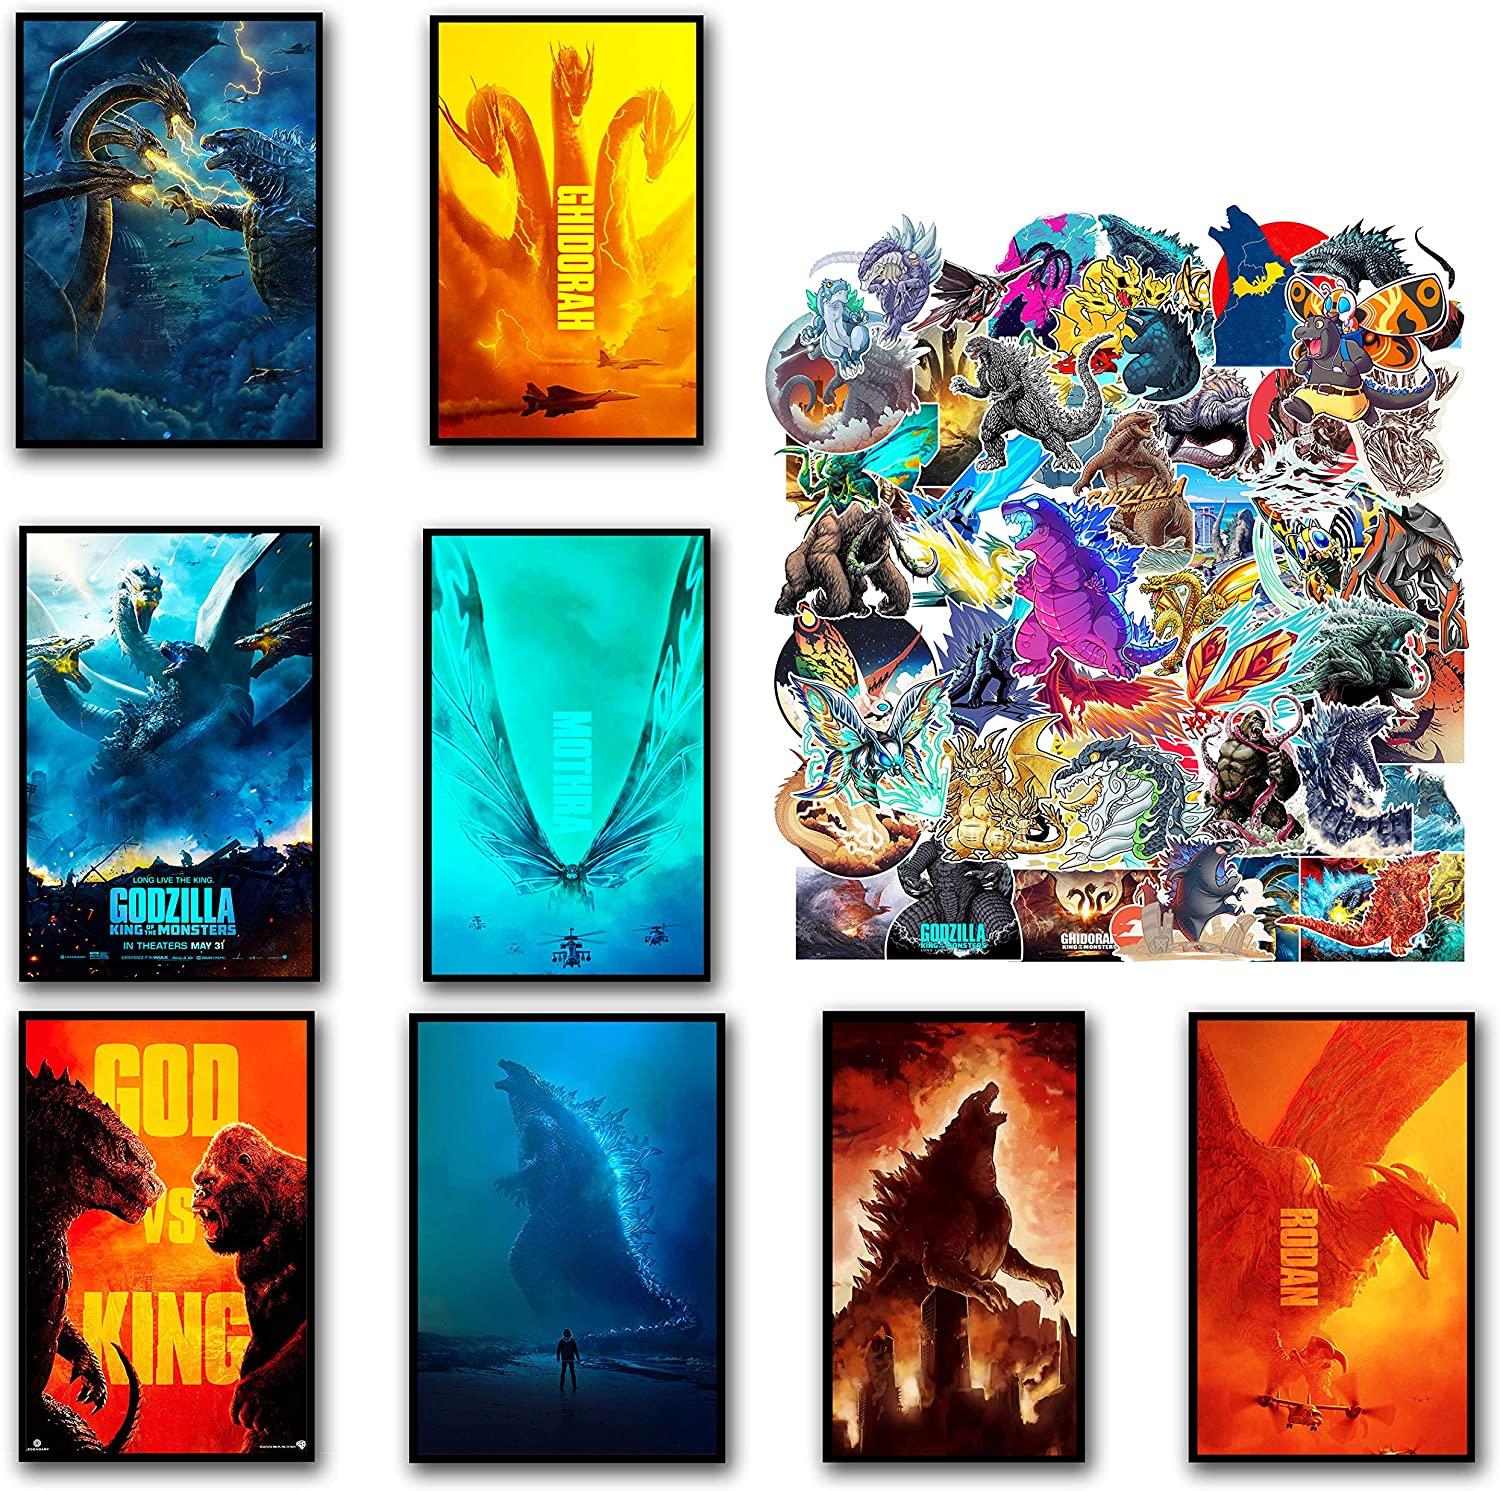 GTOTd Godzilla posters Wall Poster 8Pack with godzilla stickers 50Pcs, 11.5